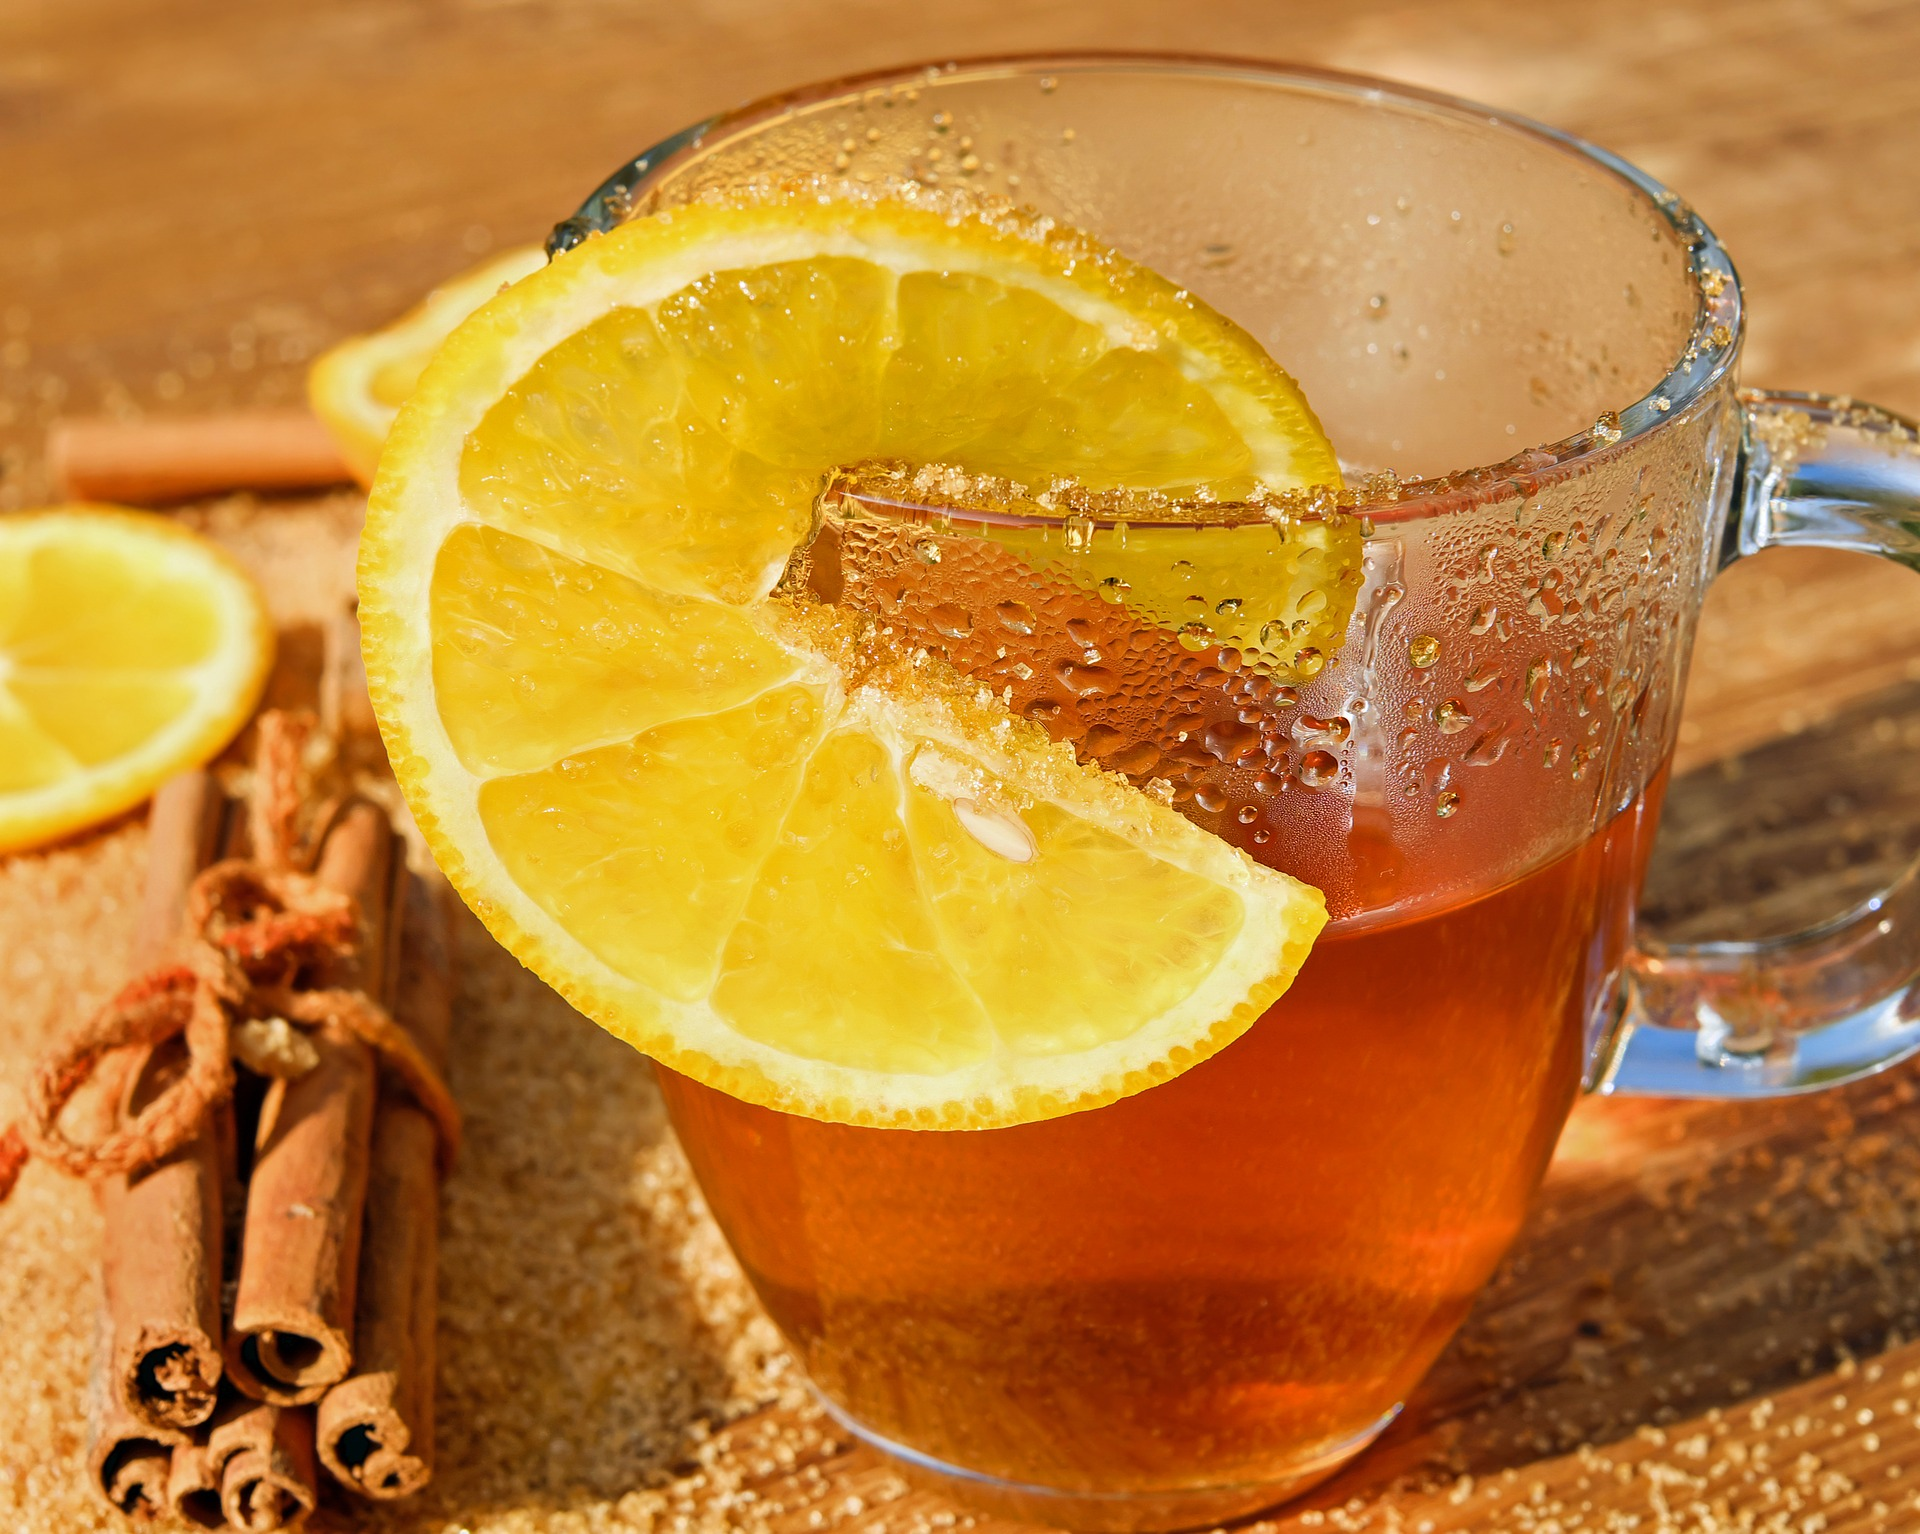 cinnamon and lemon to lift your mood